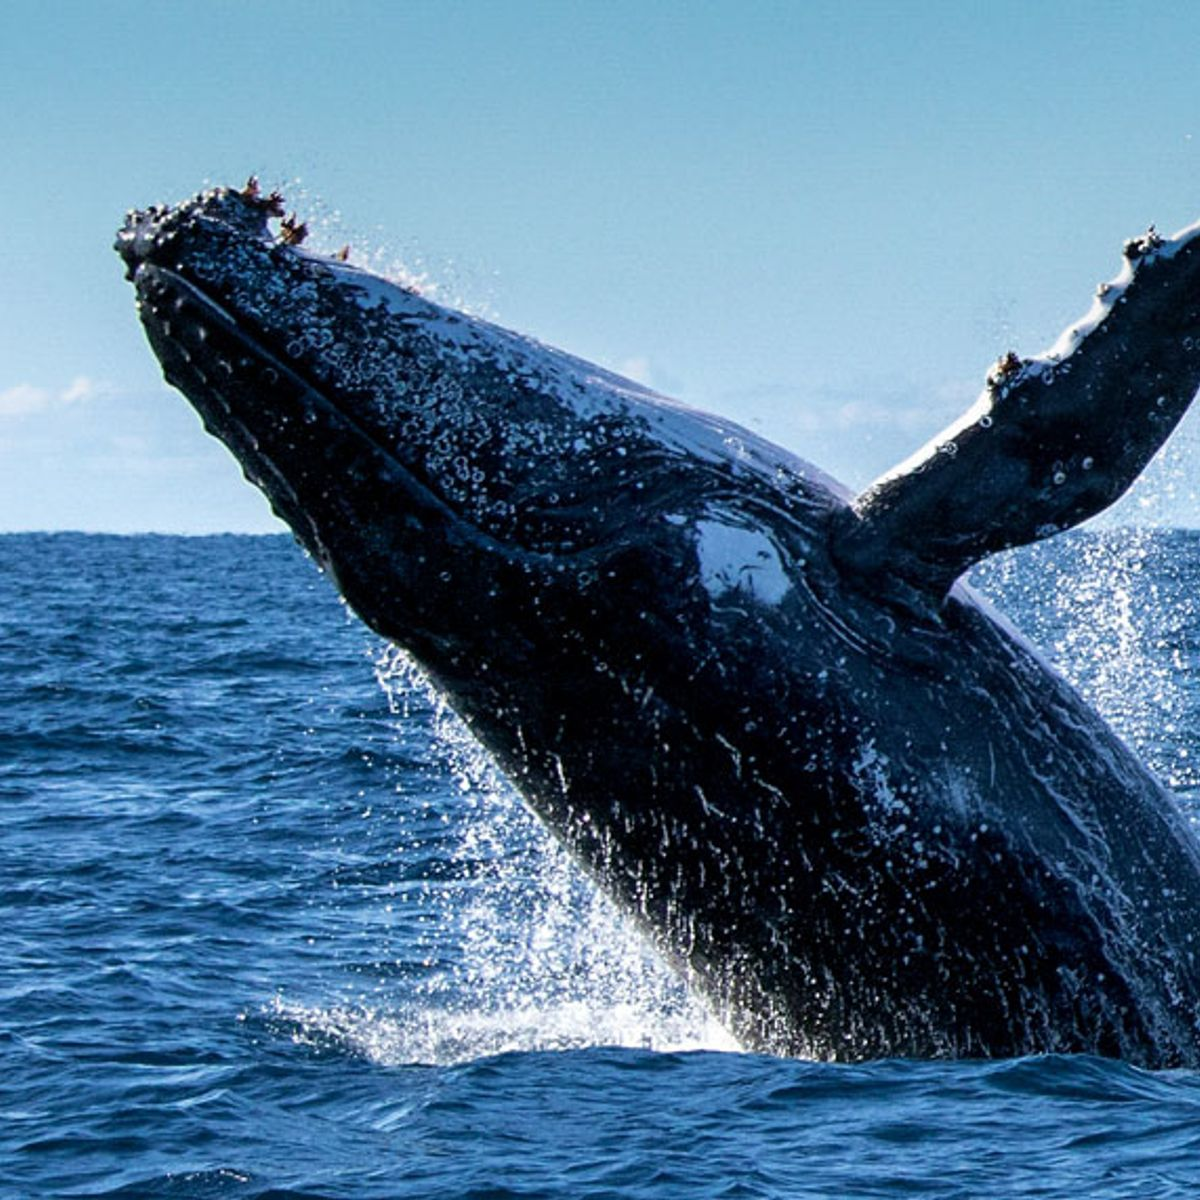 Iceland didn't hunt any whales in 2019 — and public appetite for whale meat is fading